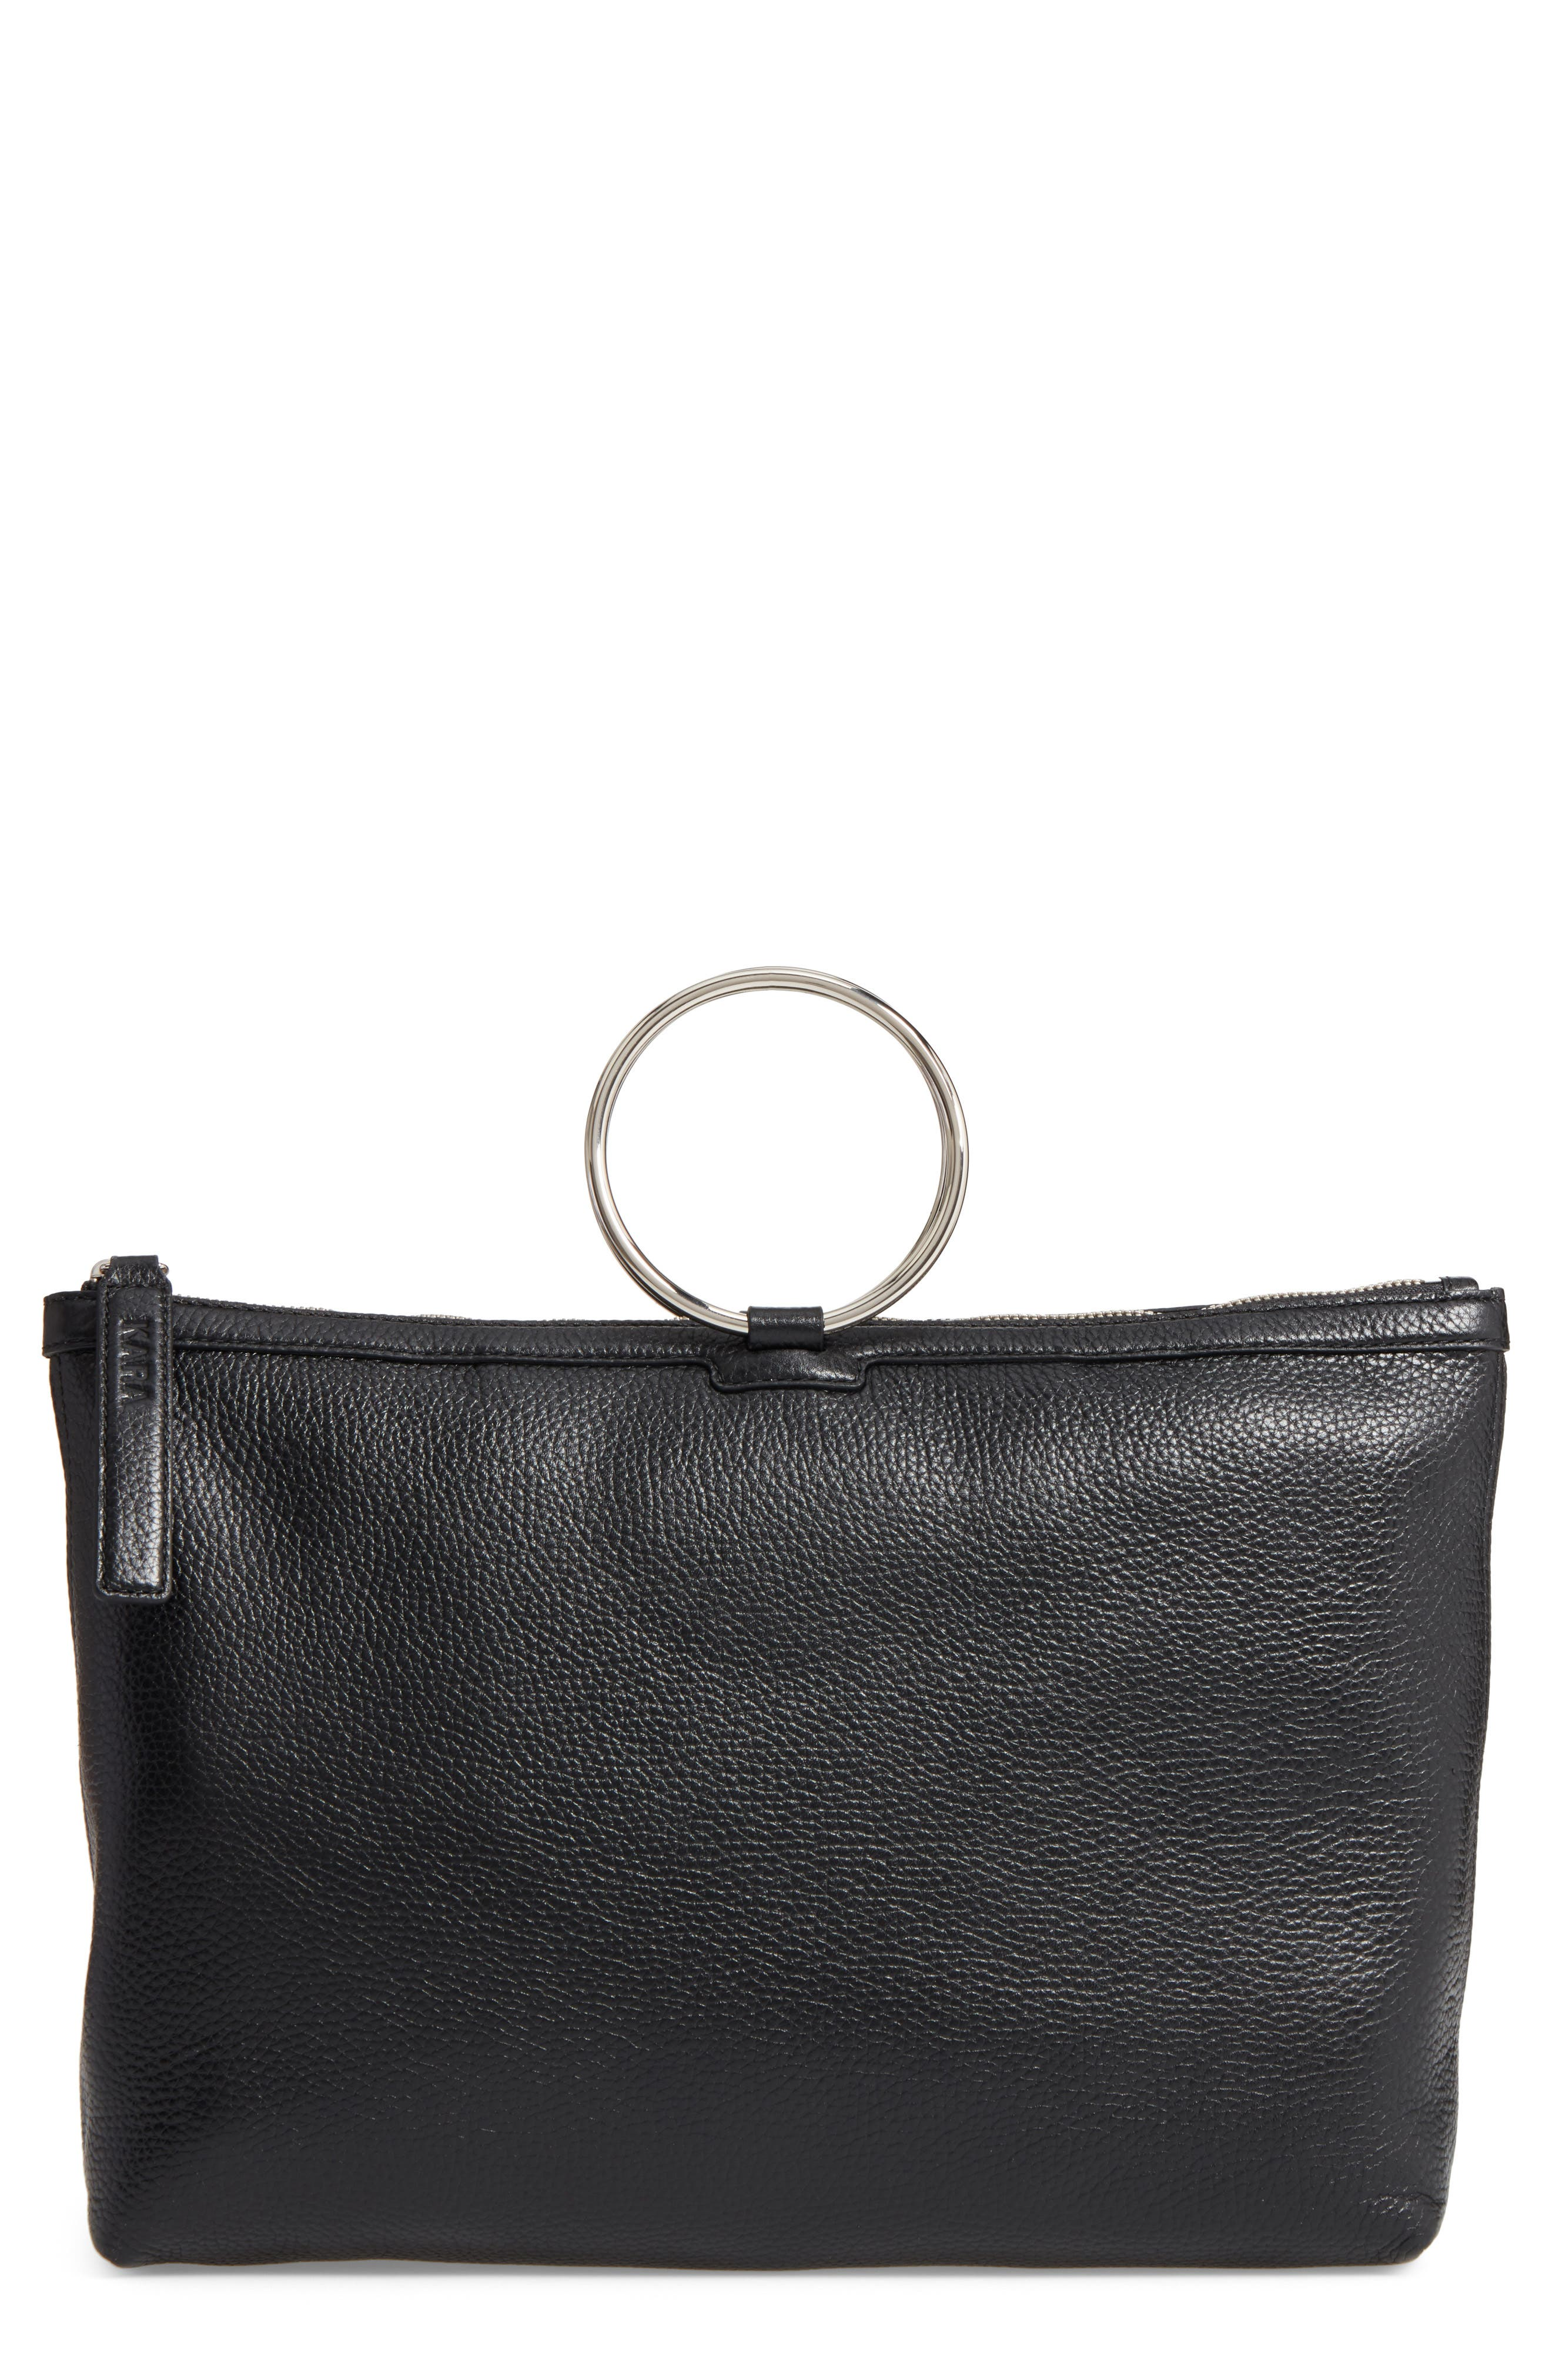 KARA Large Pebbled Leather Ring Clutch, Main, color, 001